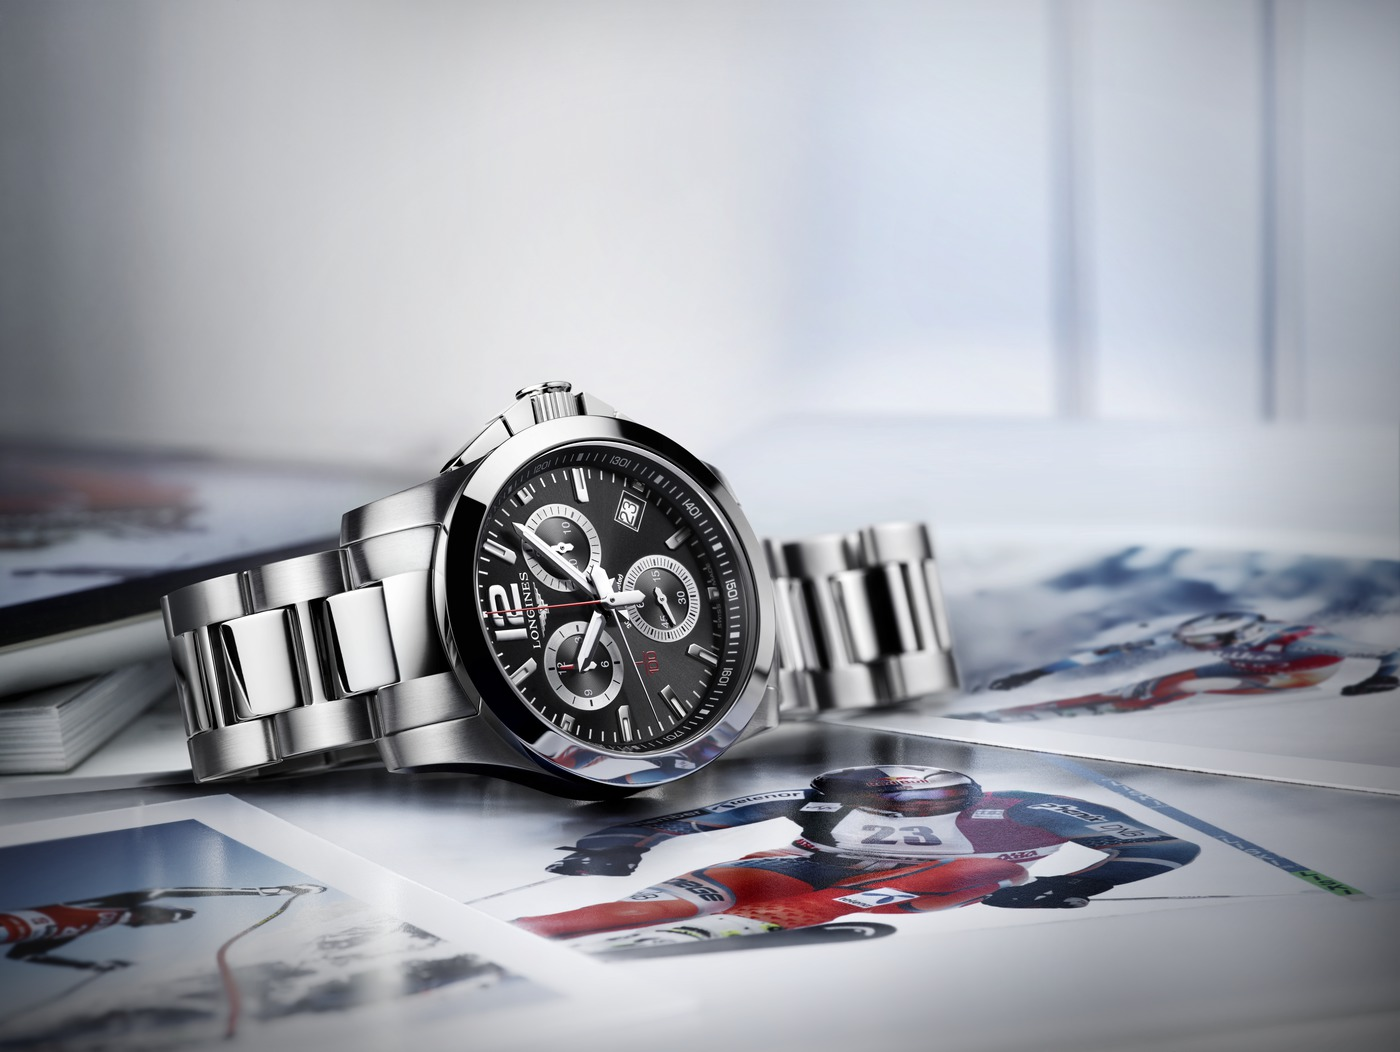 Longines Conquest 1/100th Alpine Skiing Watch 2